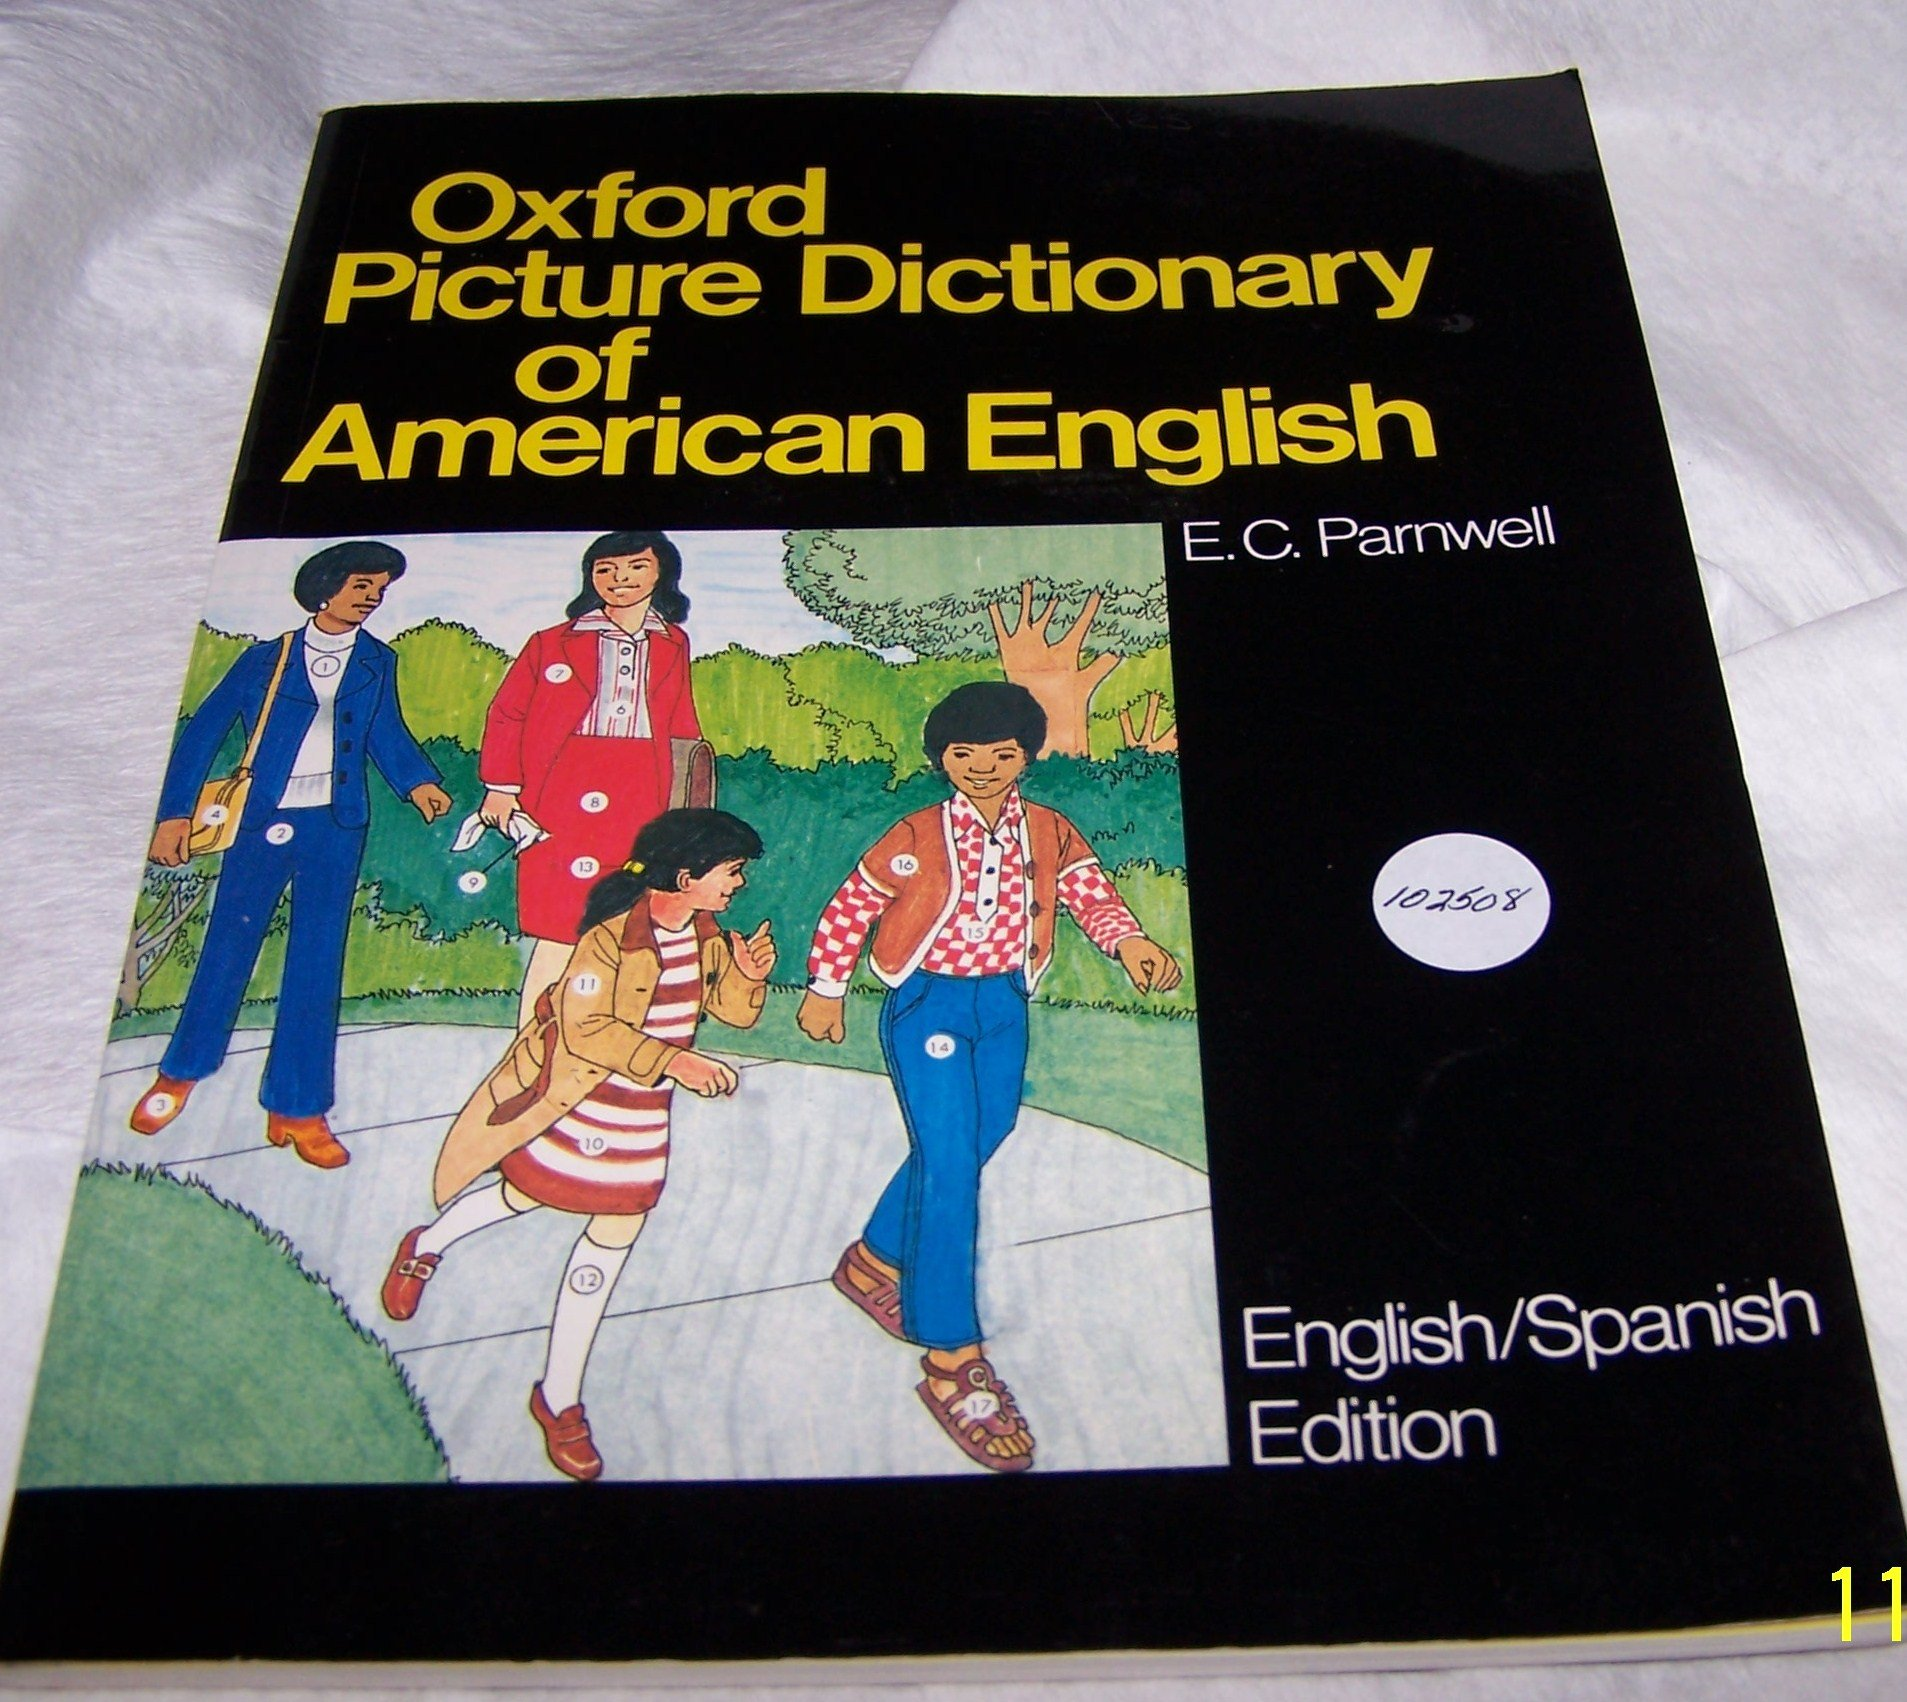 Oxford picture dictionary of american english spanish and english e c parnwell bernard case corinne burrows ray burrows 9780195023336 amazon com